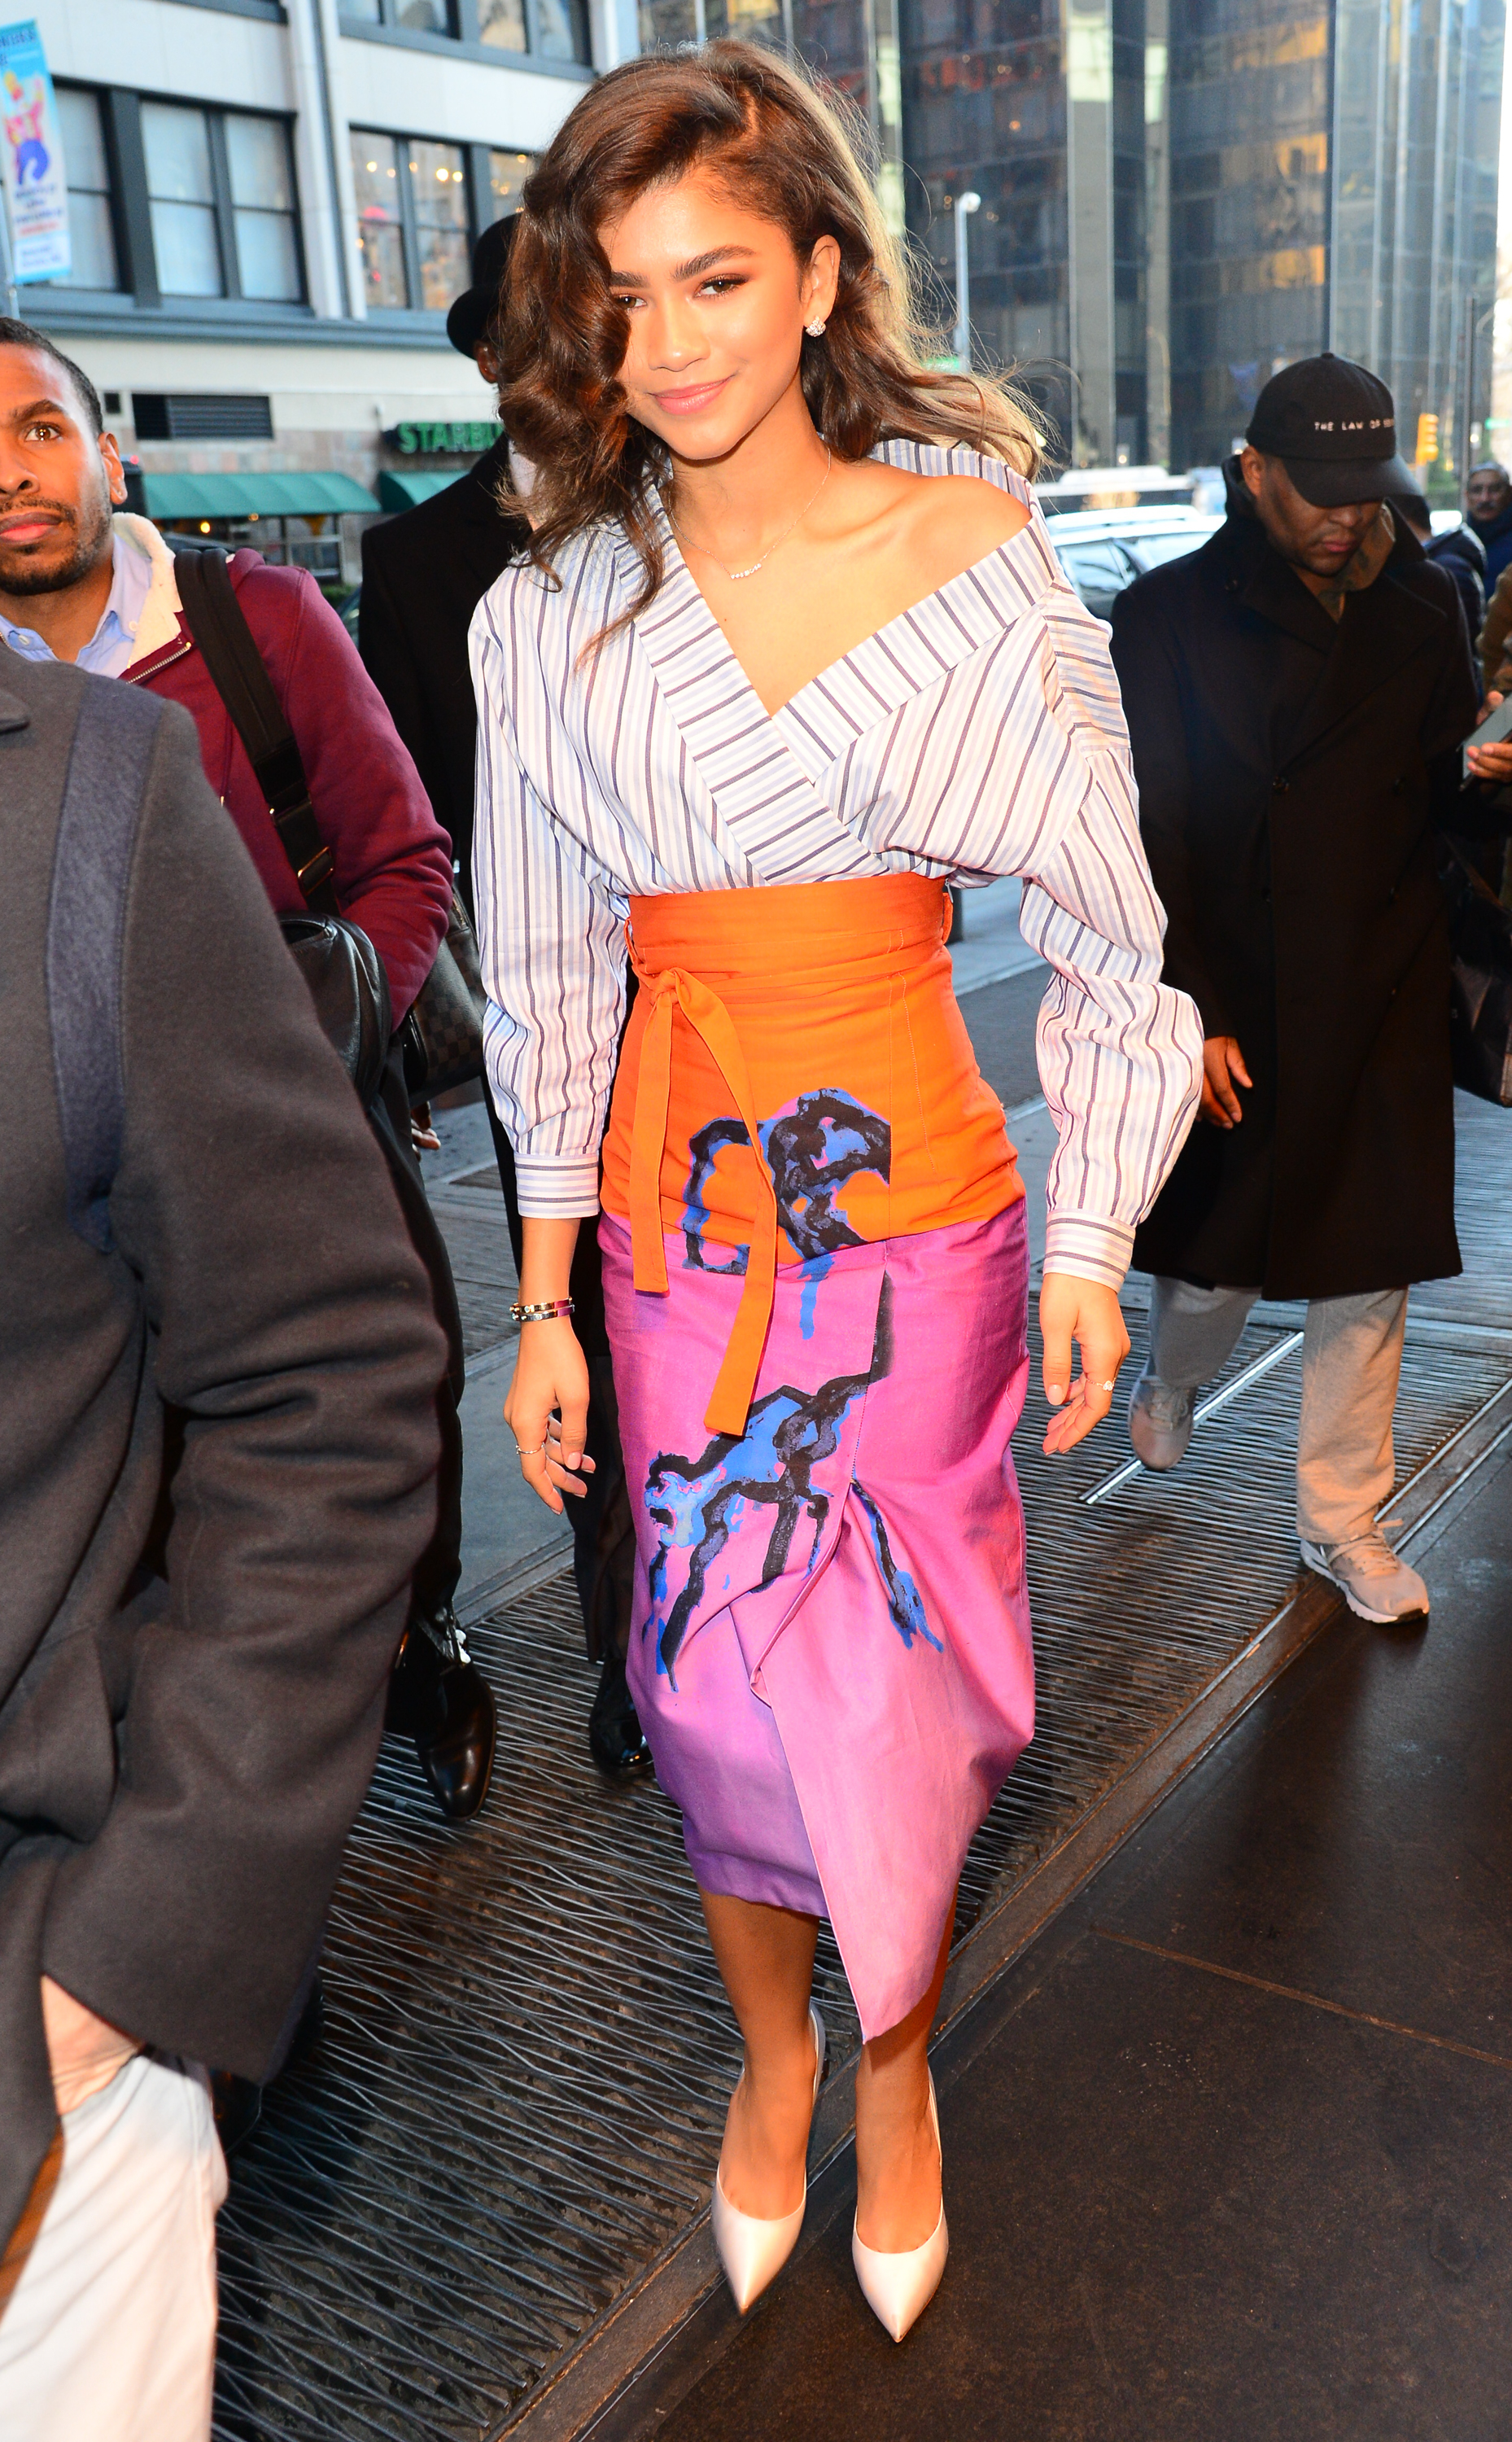 NEW YORK, NY - DECEMBER 11:  Actress Zendaya is seen walking in Midtown on December 11, 2017 in New York City.  (Photo by Raymond Hall/GC Images)